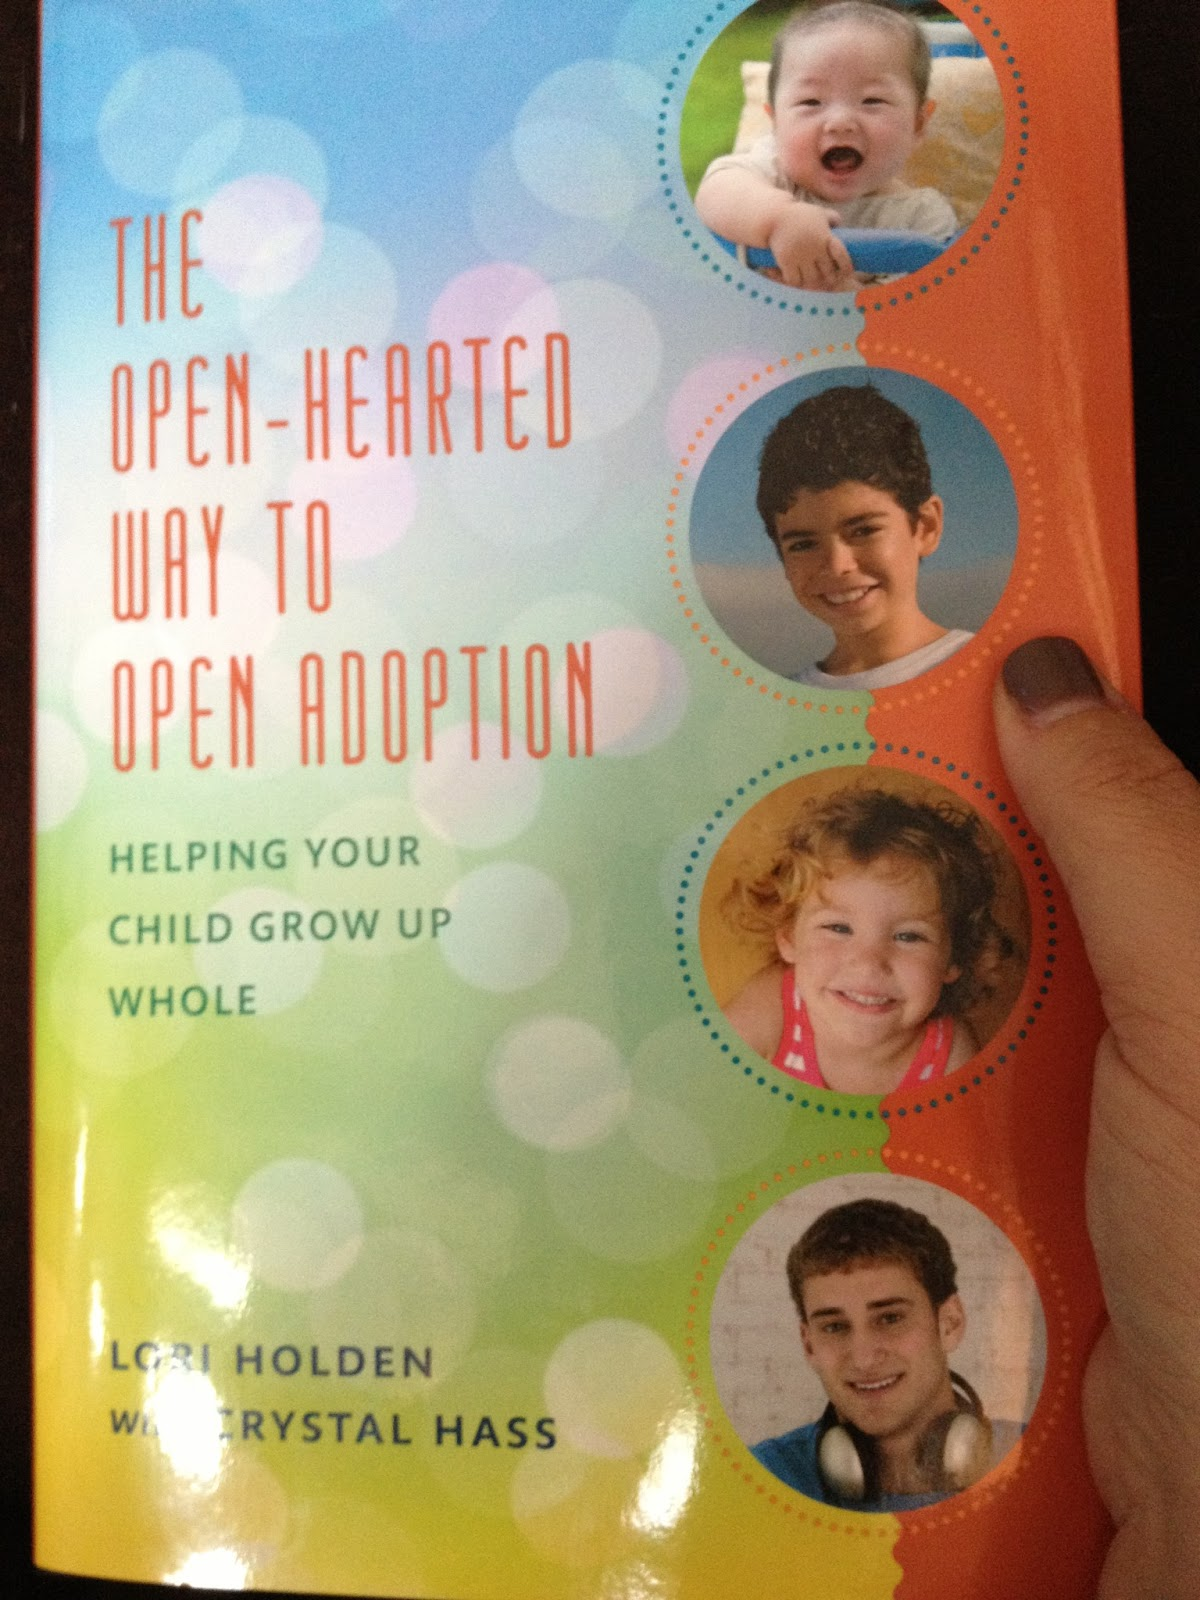 the openhearted way to open adoption helping your child grow up whole